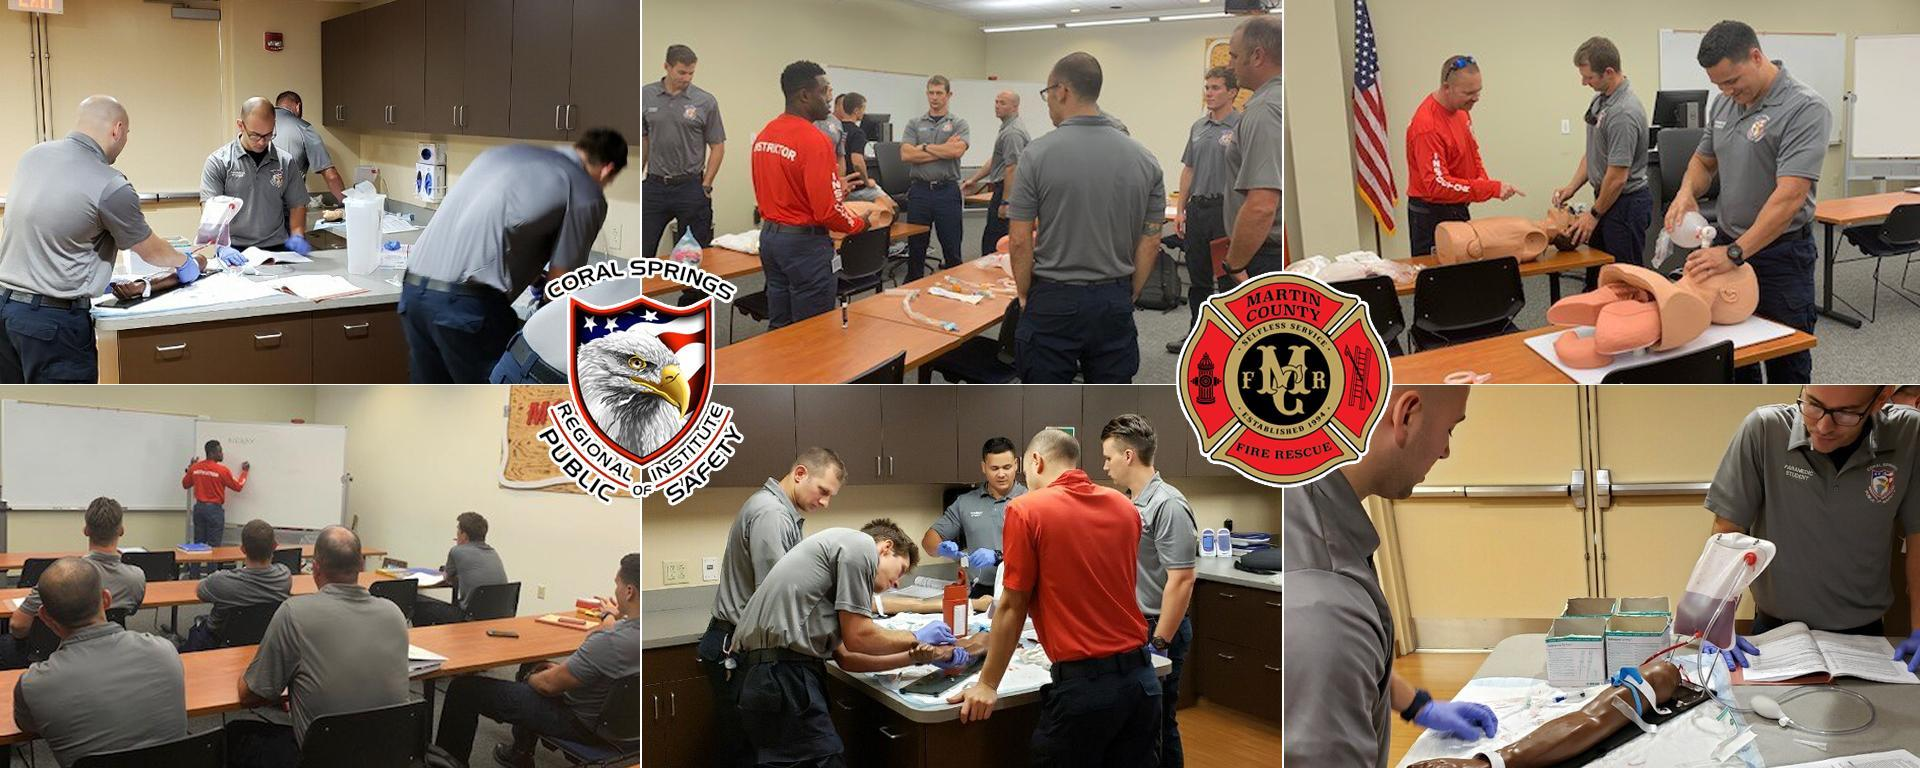 Students participating in EMT and paramedic training classes